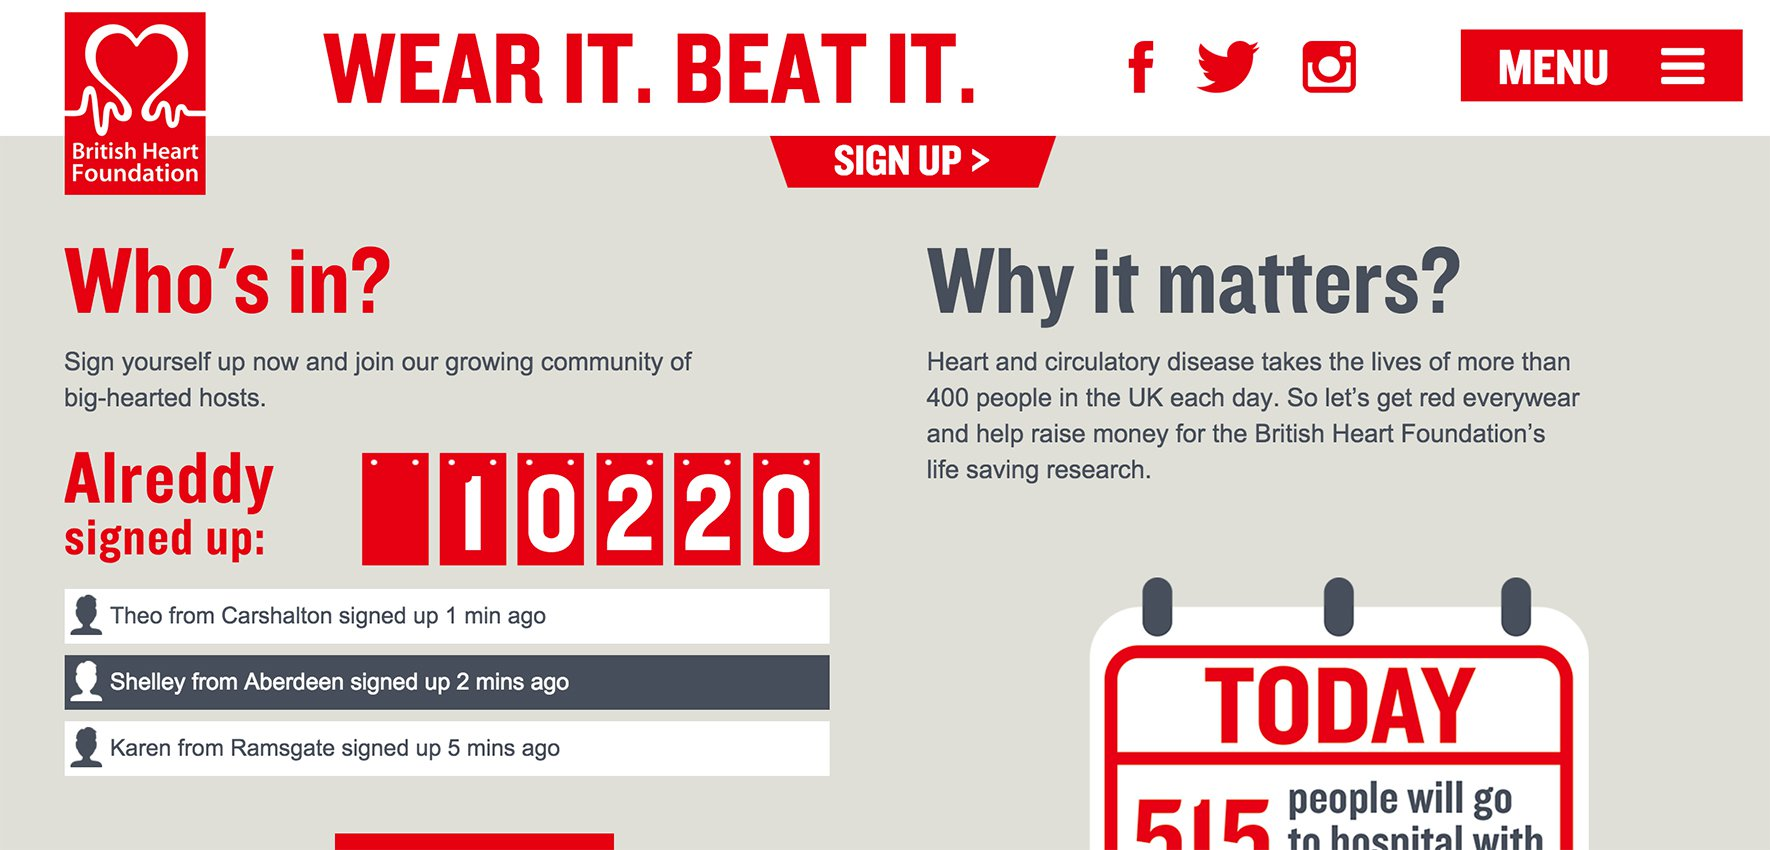 British Heart Foundation - Wear it! Beat it!